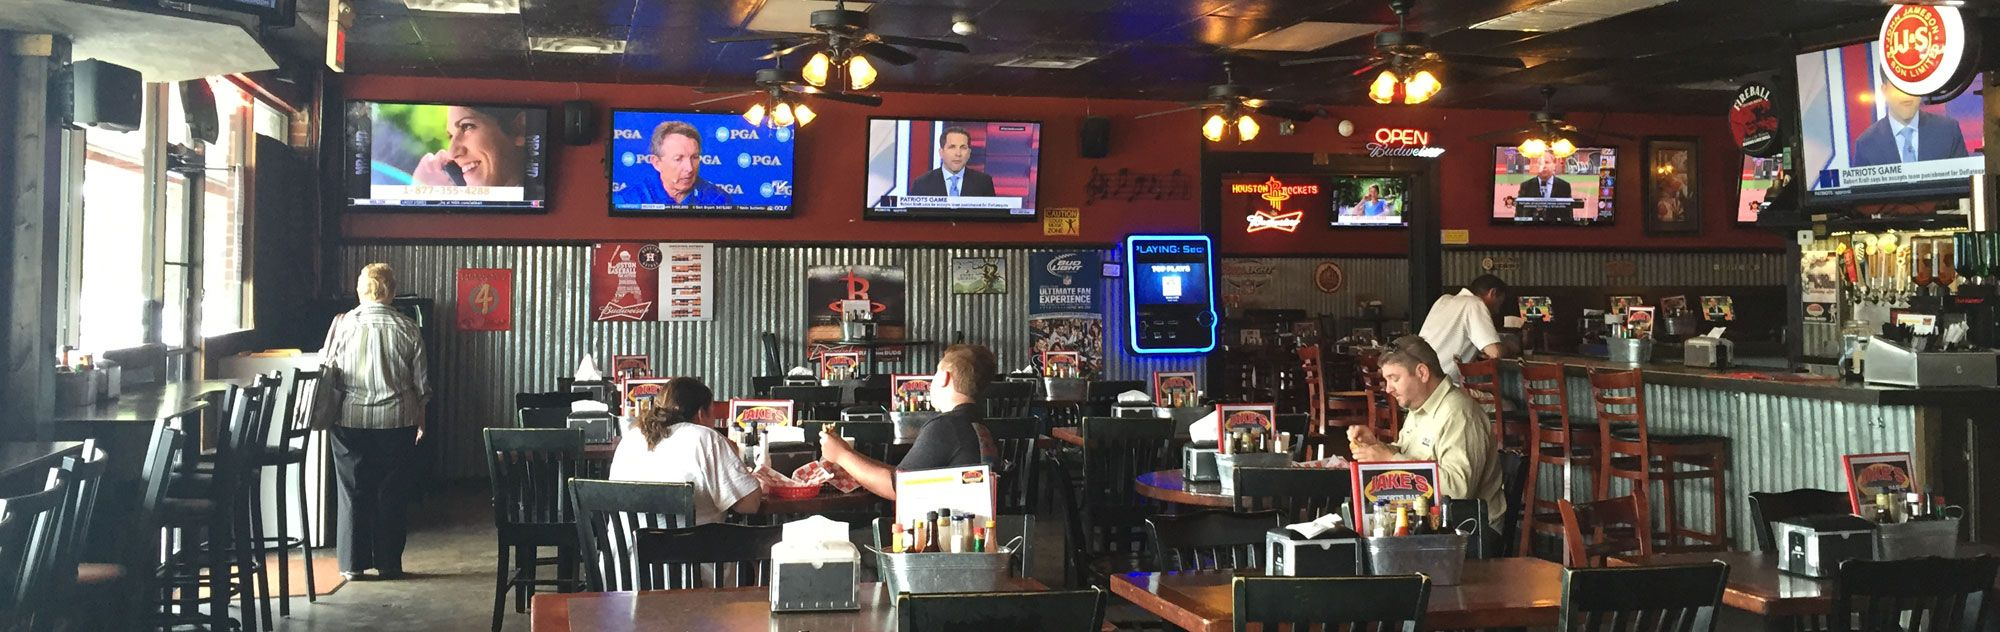 Jakes sports bar is located in the galleria area between